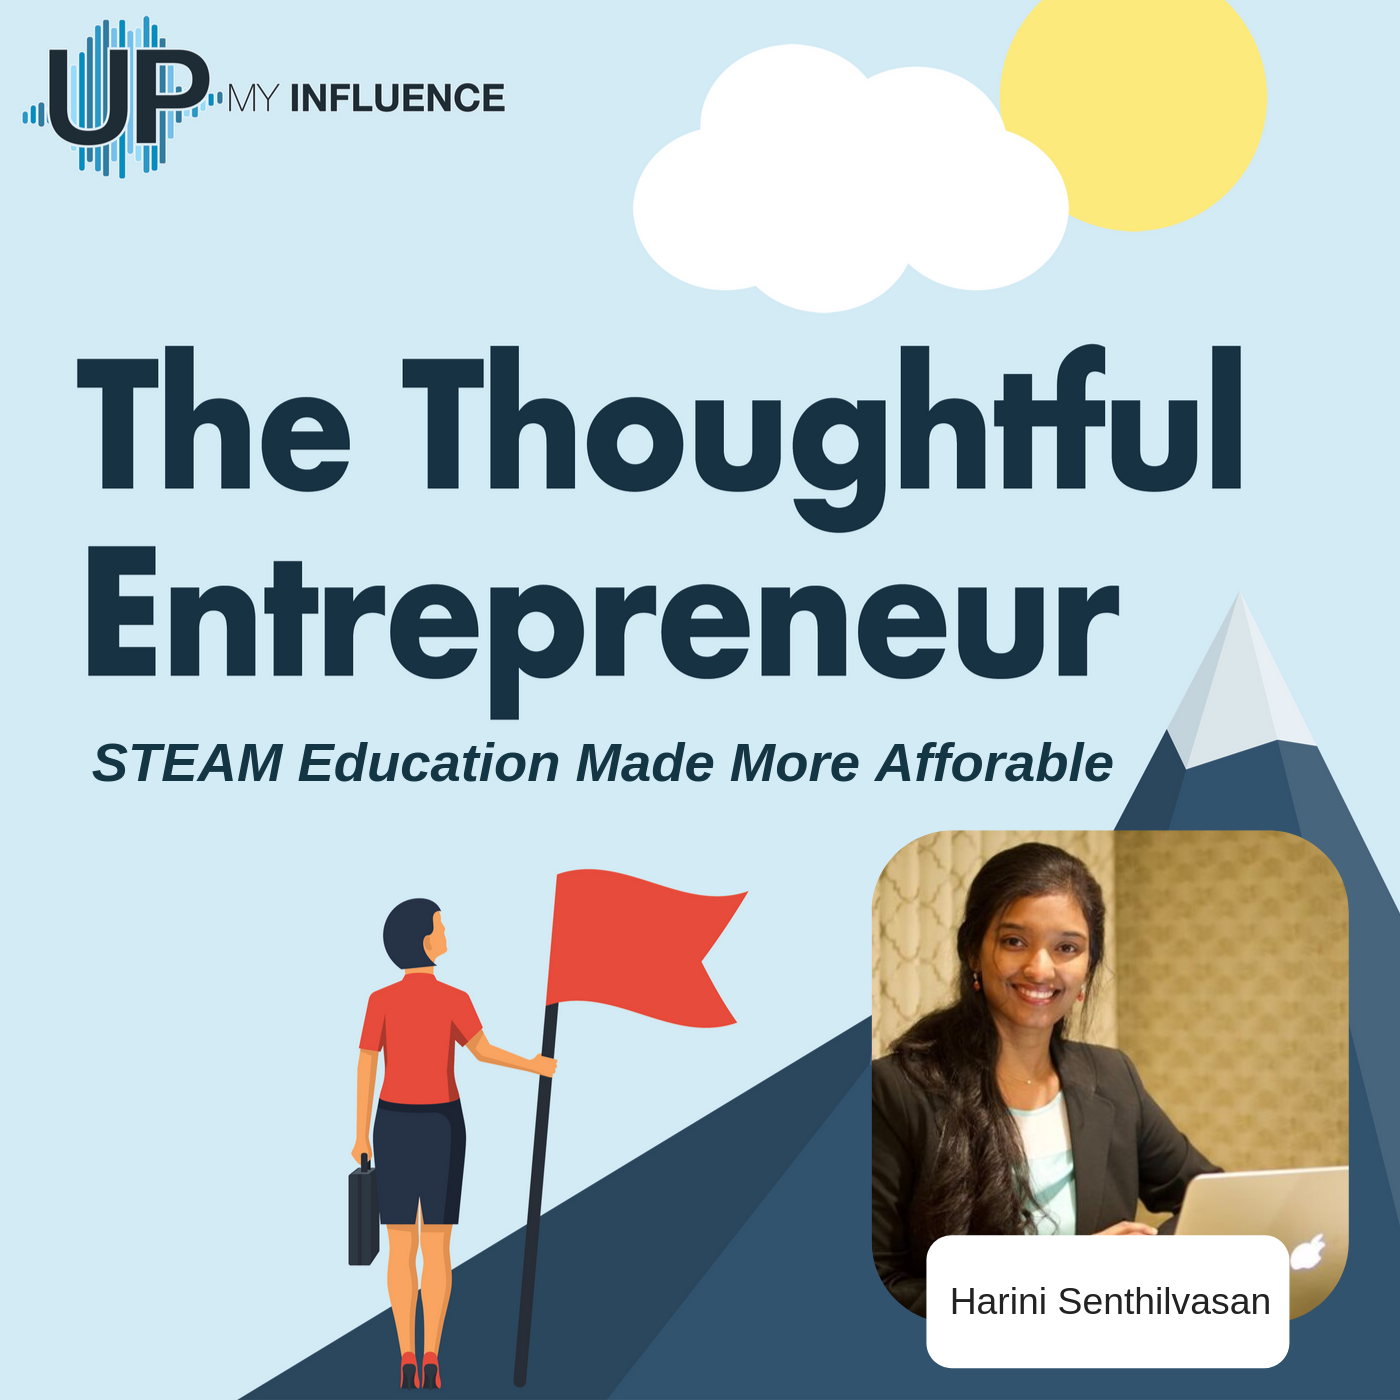 Check this out! Marshmallow Minds Founder and CEO, Harini Senthilvasan was interviewed for The Thoughtful Entrepreneur podcast with @UpMyInfluence.